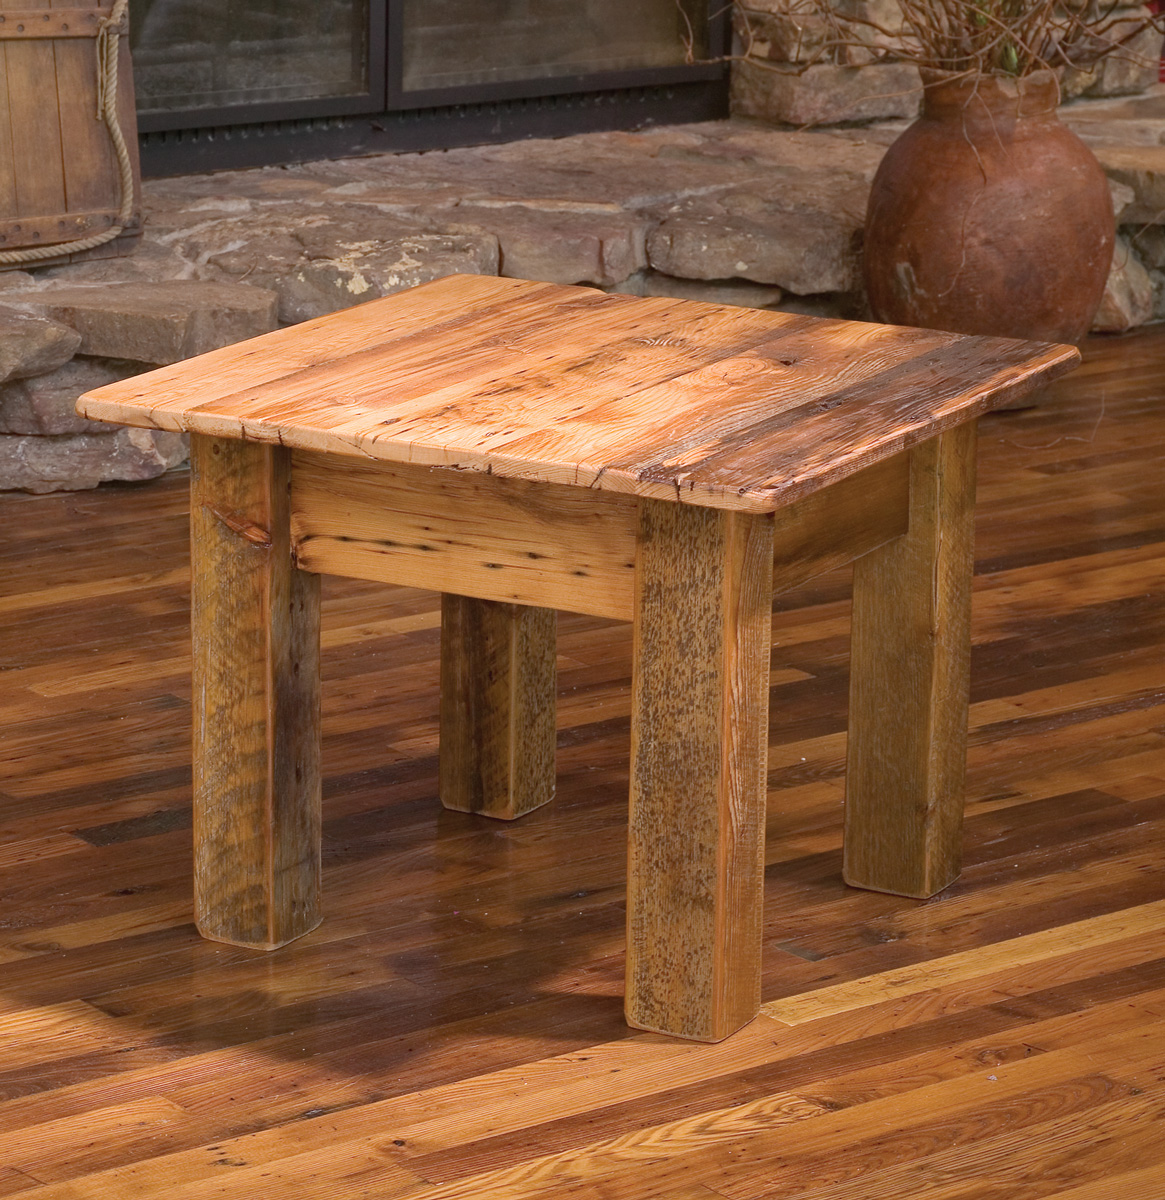 Diy Plans Barn Wood End Table Plans Pdf Download Balsa